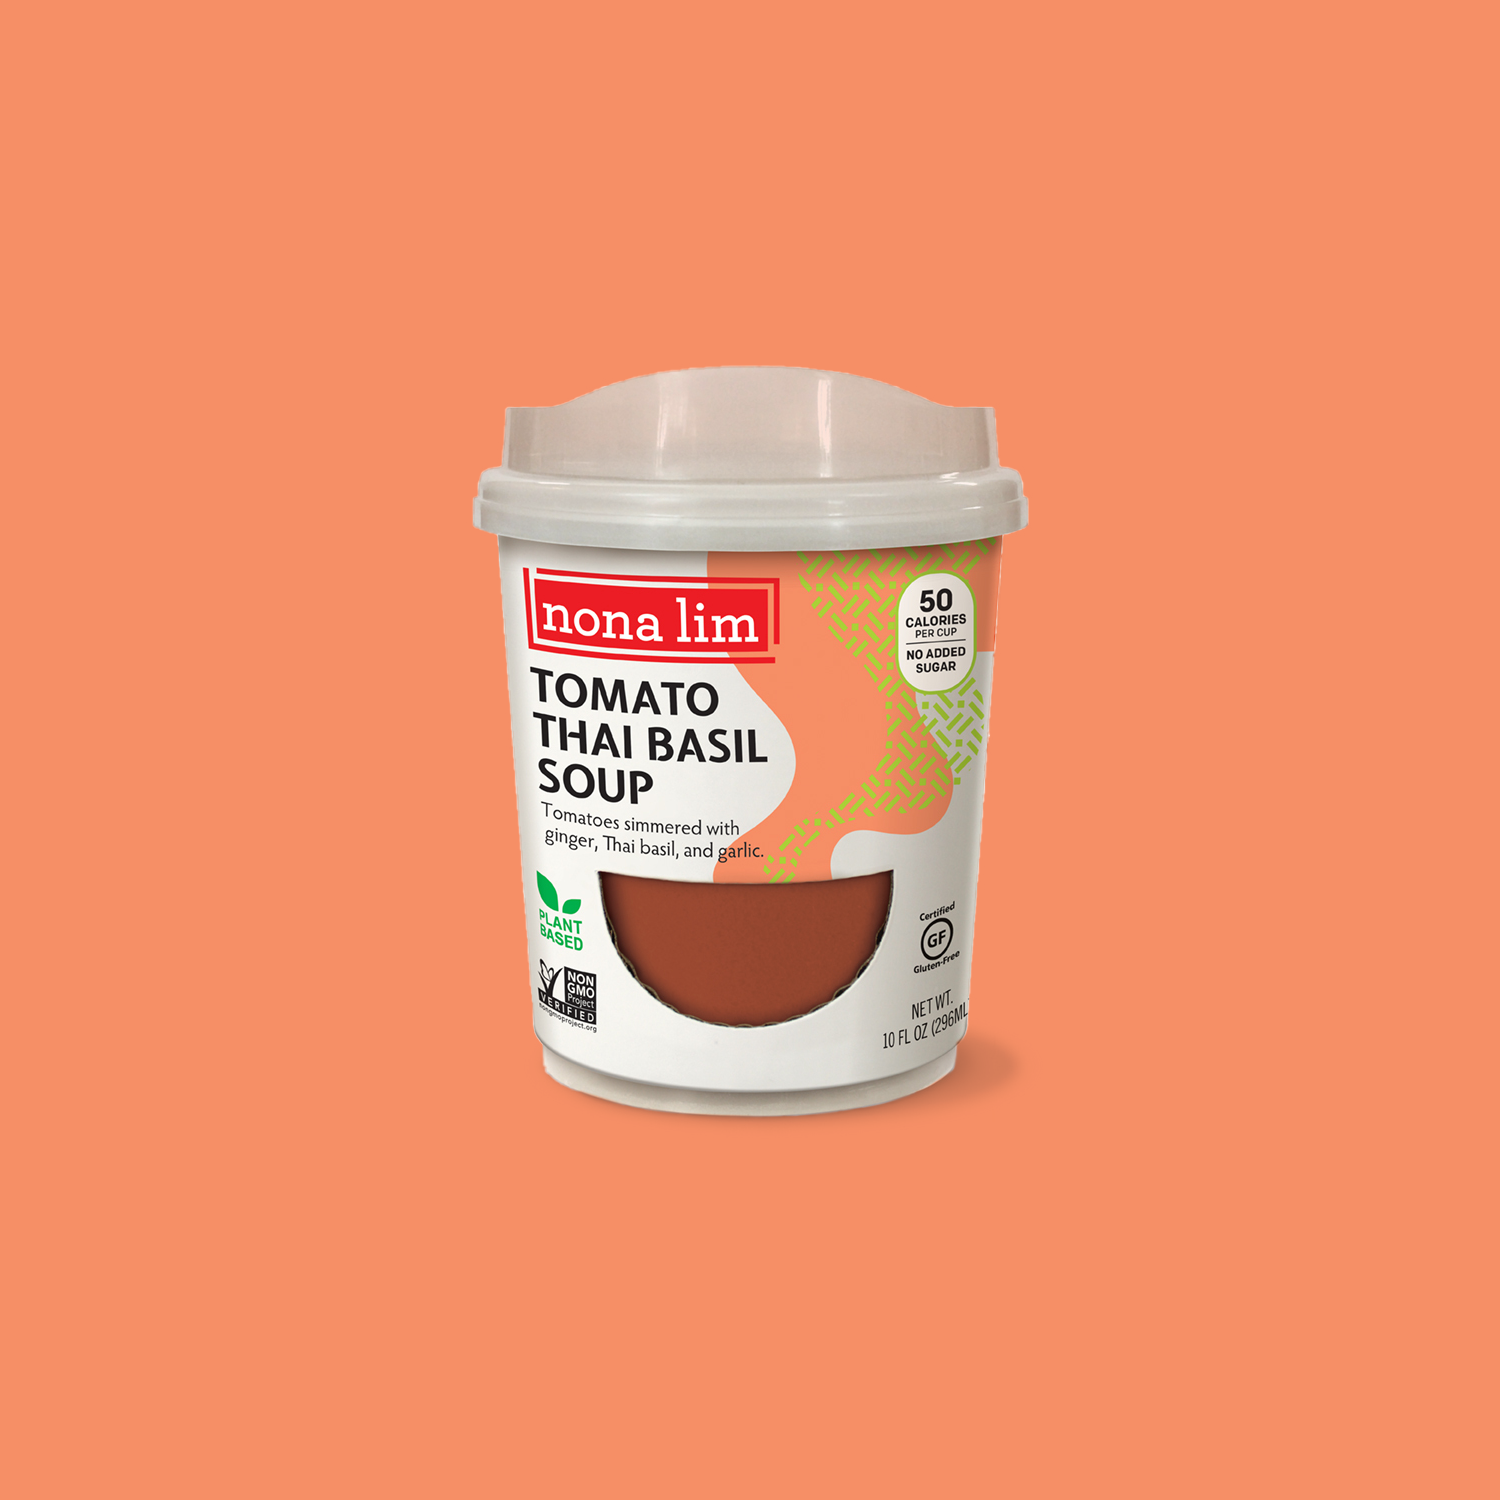 Tomato Thai Basil Soup Heat & Sip Cup (6 Pack)